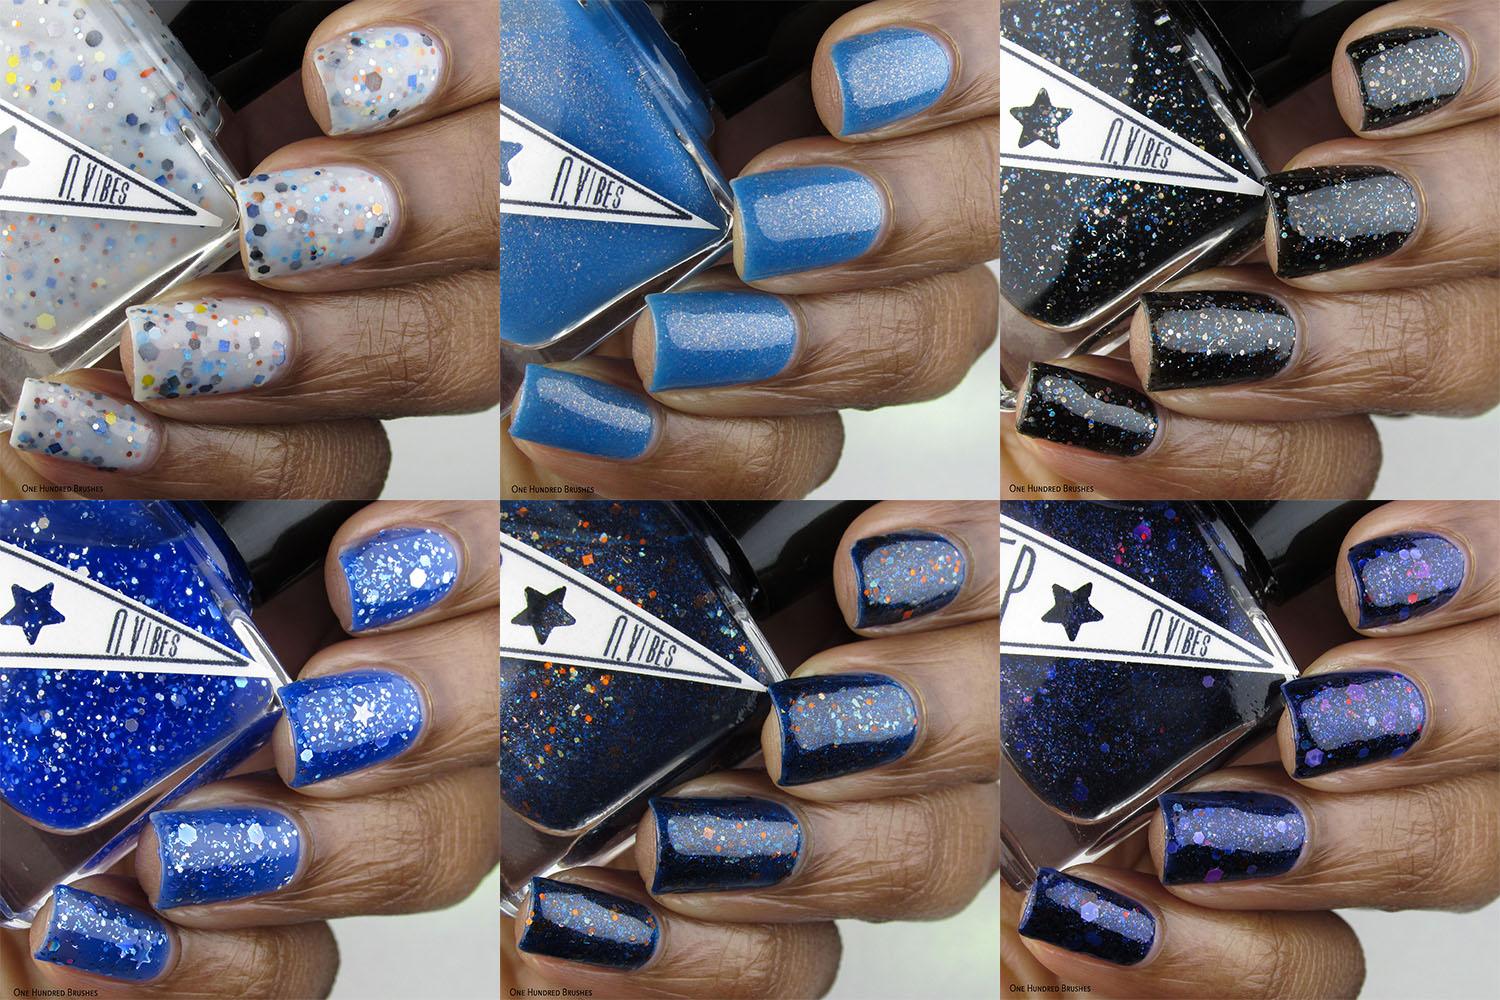 Bottle Side Collage - Stargazer Collection - Pep Nail Vibes Feb 2020